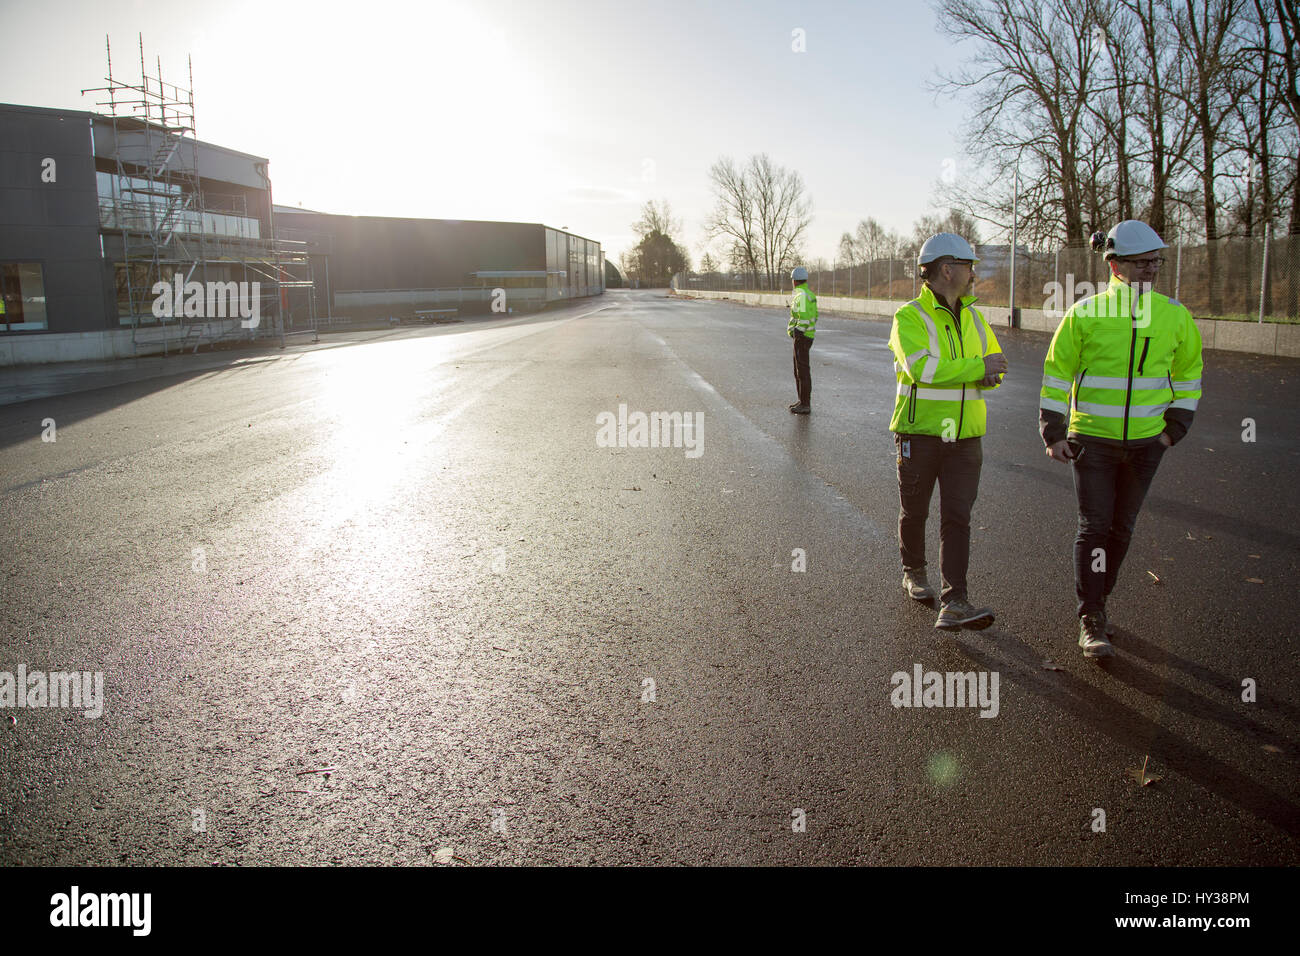 Sweden, Mature men wearing protective workwear in street outside construction site - Stock Image